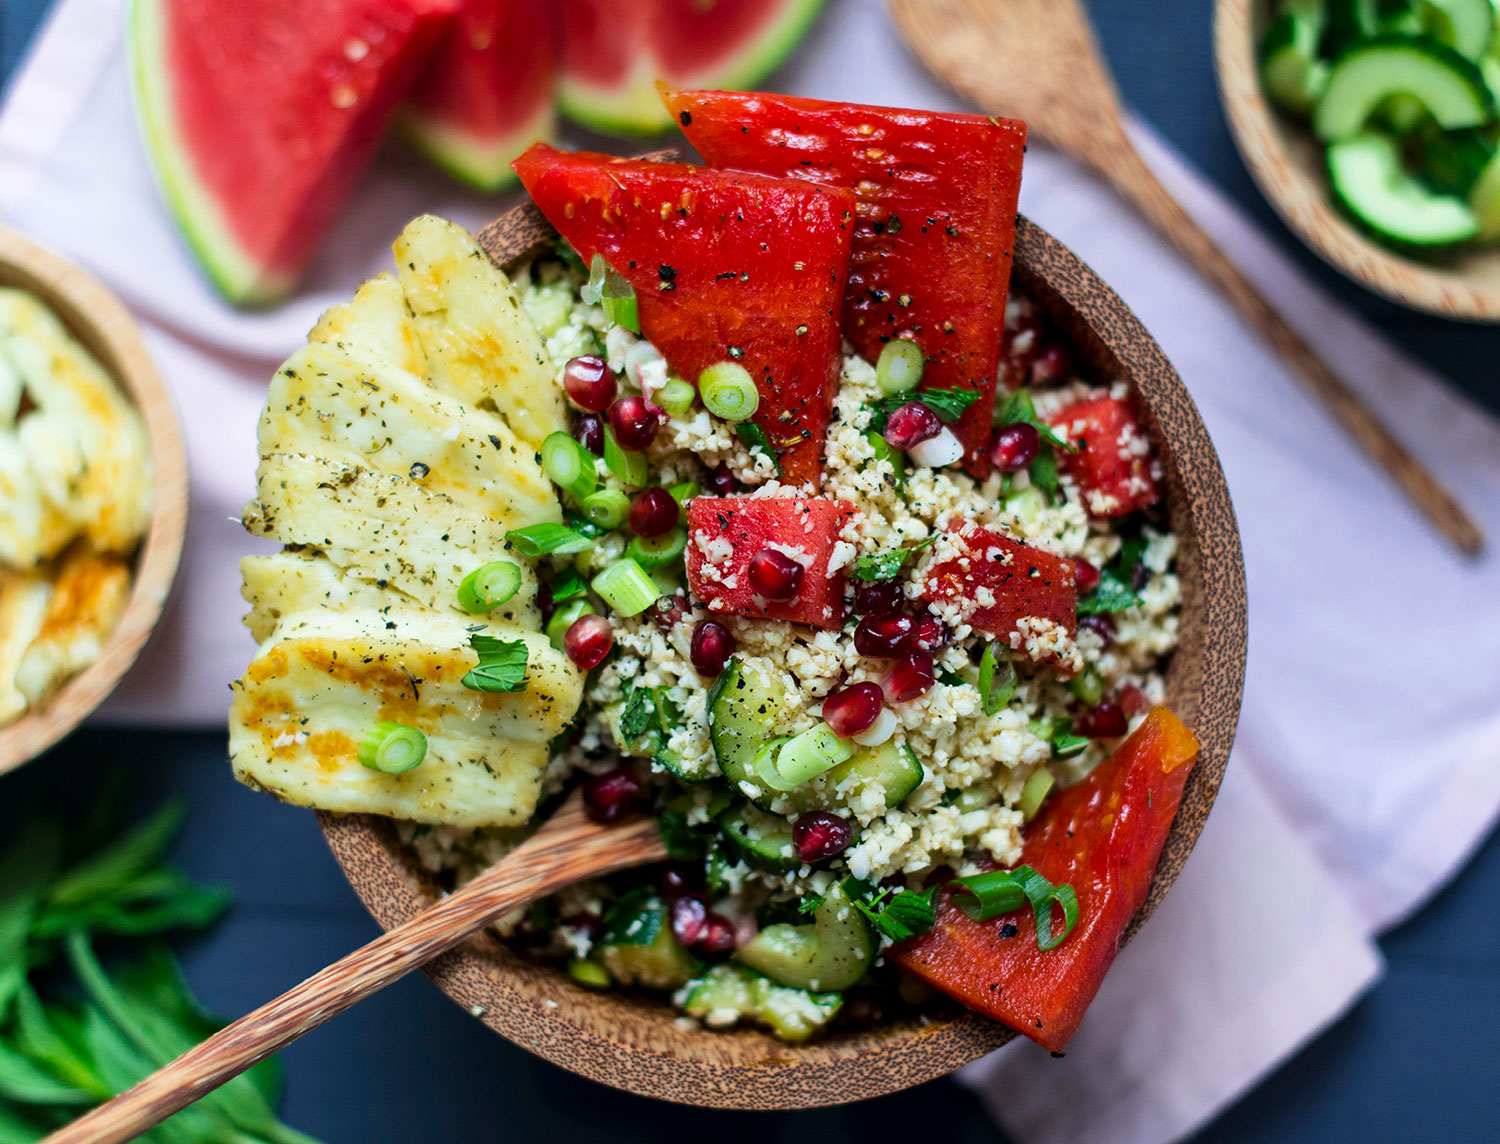 Cauliflower-tabouleh-halloumi-watermelon-7